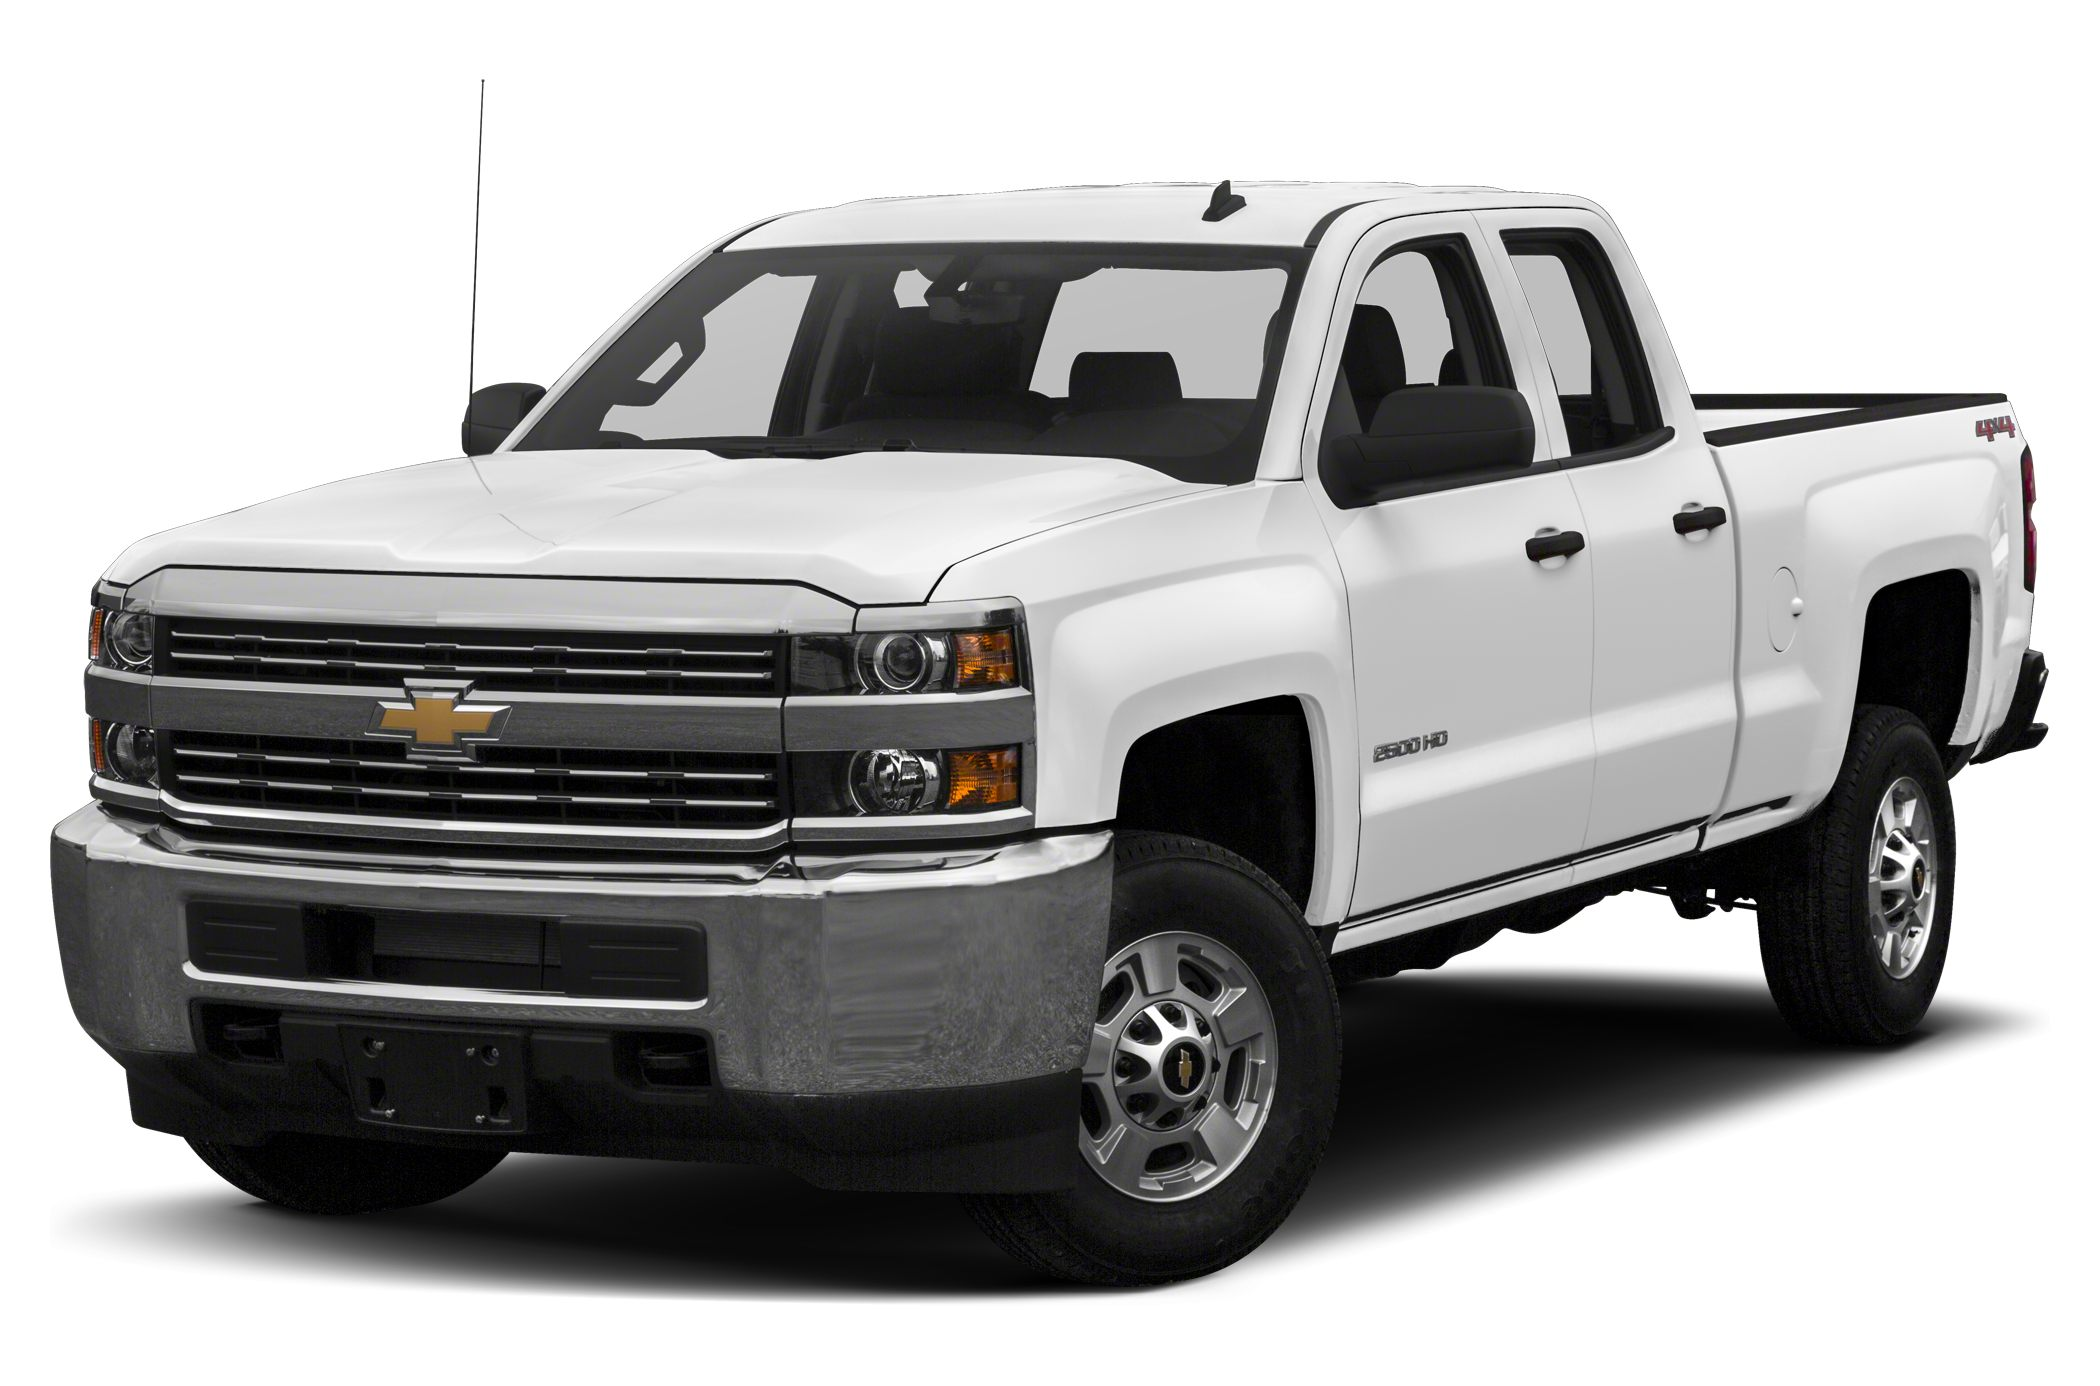 2015 Chevrolet Silverado 2500 LT Crew Cab Pickup for sale in Grants Pass for $50,405 with 0 miles.